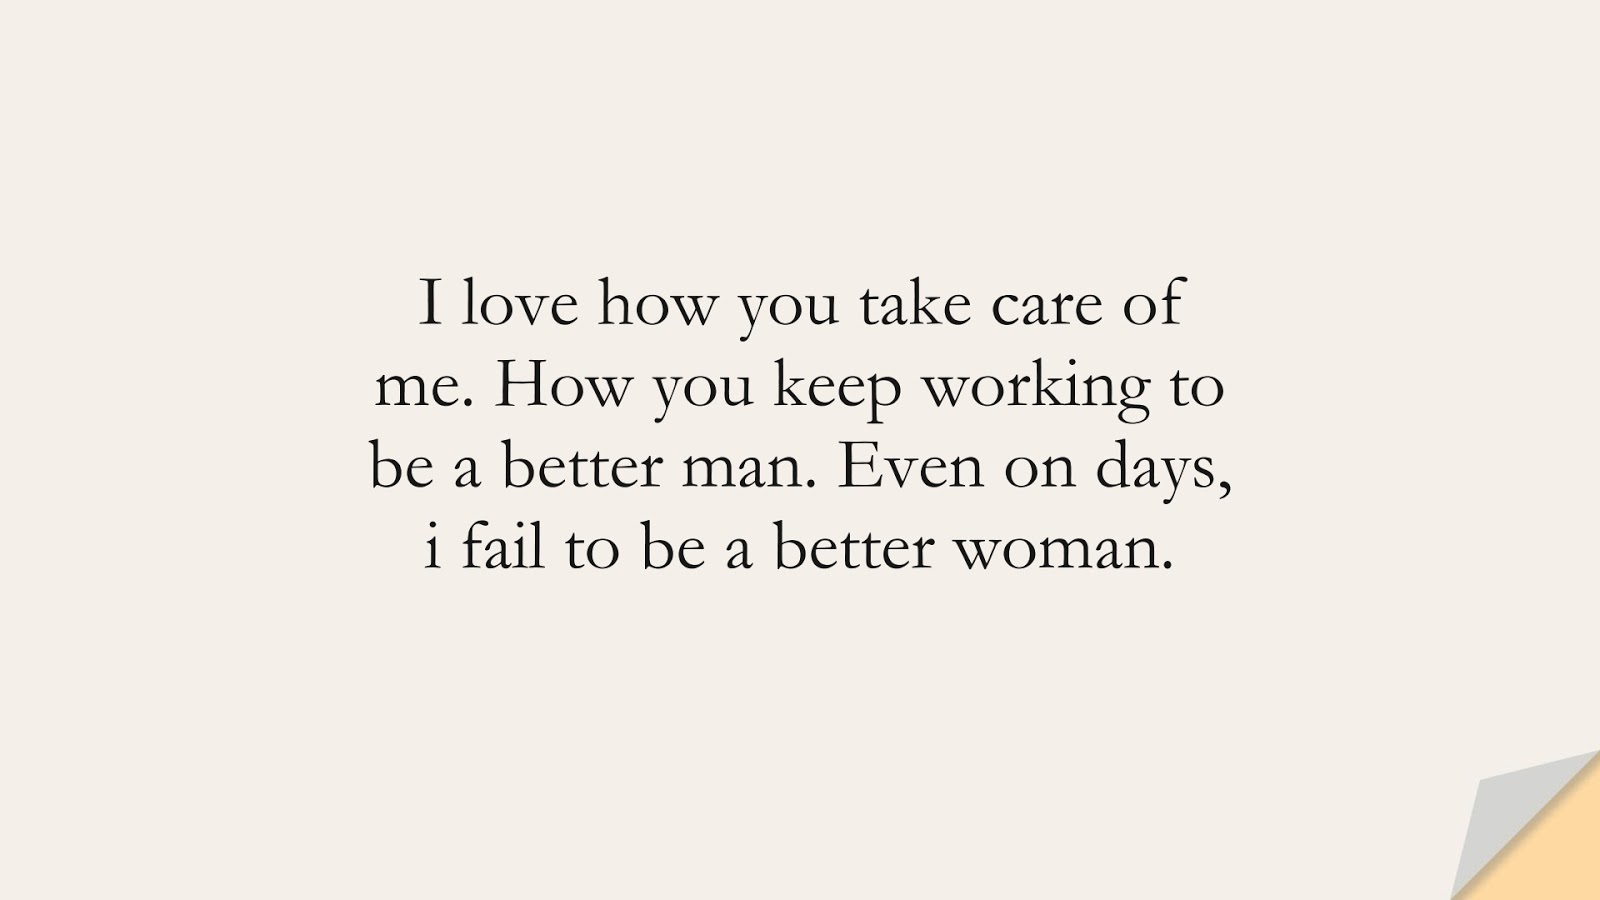 I love how you take care of me. How you keep working to be a better man. Even on days, i fail to be a better woman.FALSE